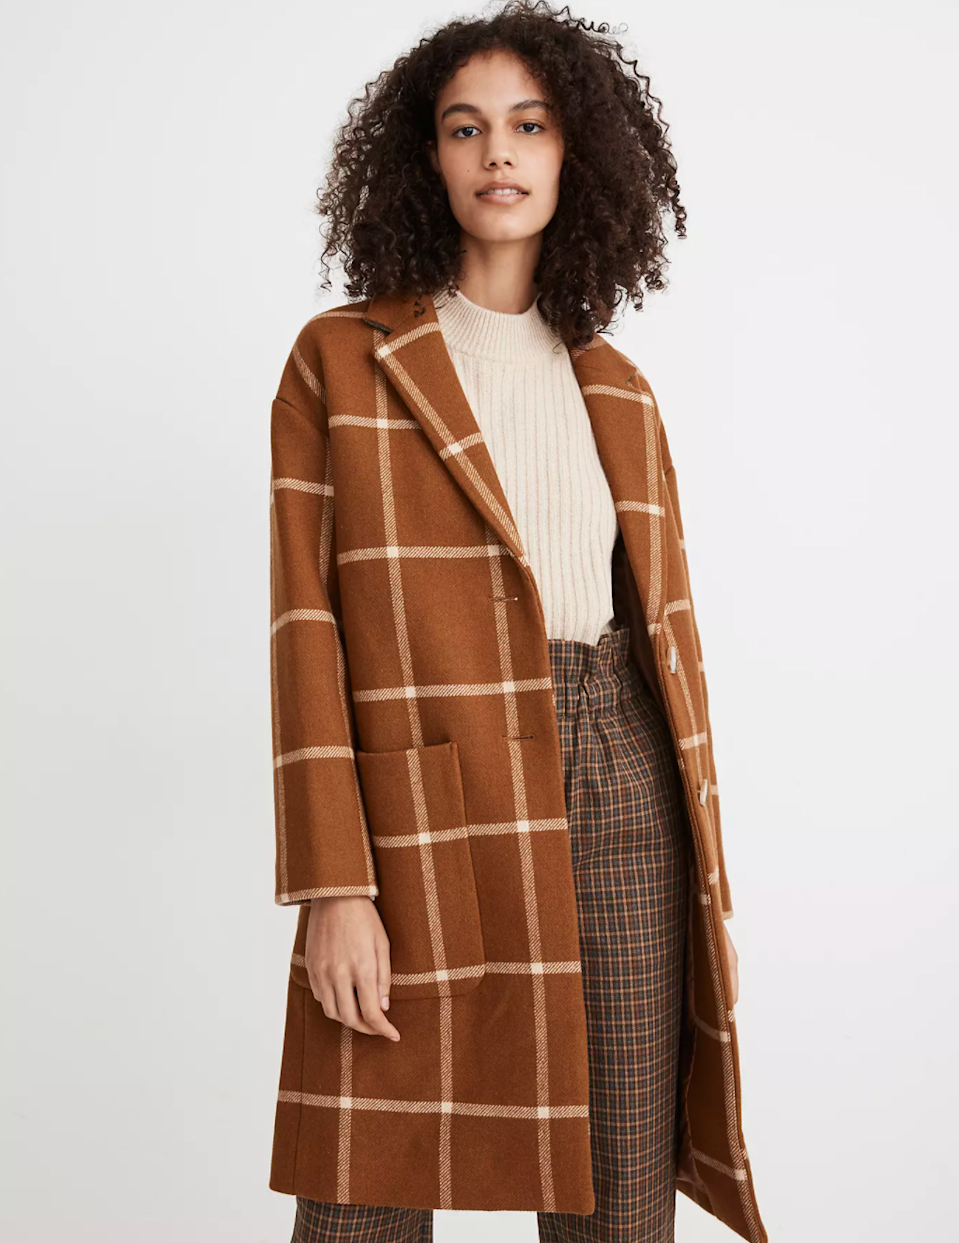 """<h2><a href=""""https://fave.co/2Iqvpvv"""" rel=""""nofollow noopener"""" target=""""_blank"""" data-ylk=""""slk:Madewell Sale"""" class=""""link rapid-noclick-resp"""">Madewell Sale</a></h2><br><strong>Sale:</strong> 20% off orders $100+ and 30% off orders 200+<br><br><strong>Dates:</strong> Now - October 16<br><br><strong>Promo Code:</strong> SPREETIME<br><br><strong>Madewell</strong> Windowpane Elmcourt Coat in Insuluxe Fabric, $, available at <a href=""""https://go.skimresources.com/?id=30283X879131&url=https%3A%2F%2Ffave.co%2F33Uj2QM"""" rel=""""nofollow noopener"""" target=""""_blank"""" data-ylk=""""slk:Madewell"""" class=""""link rapid-noclick-resp"""">Madewell</a>"""